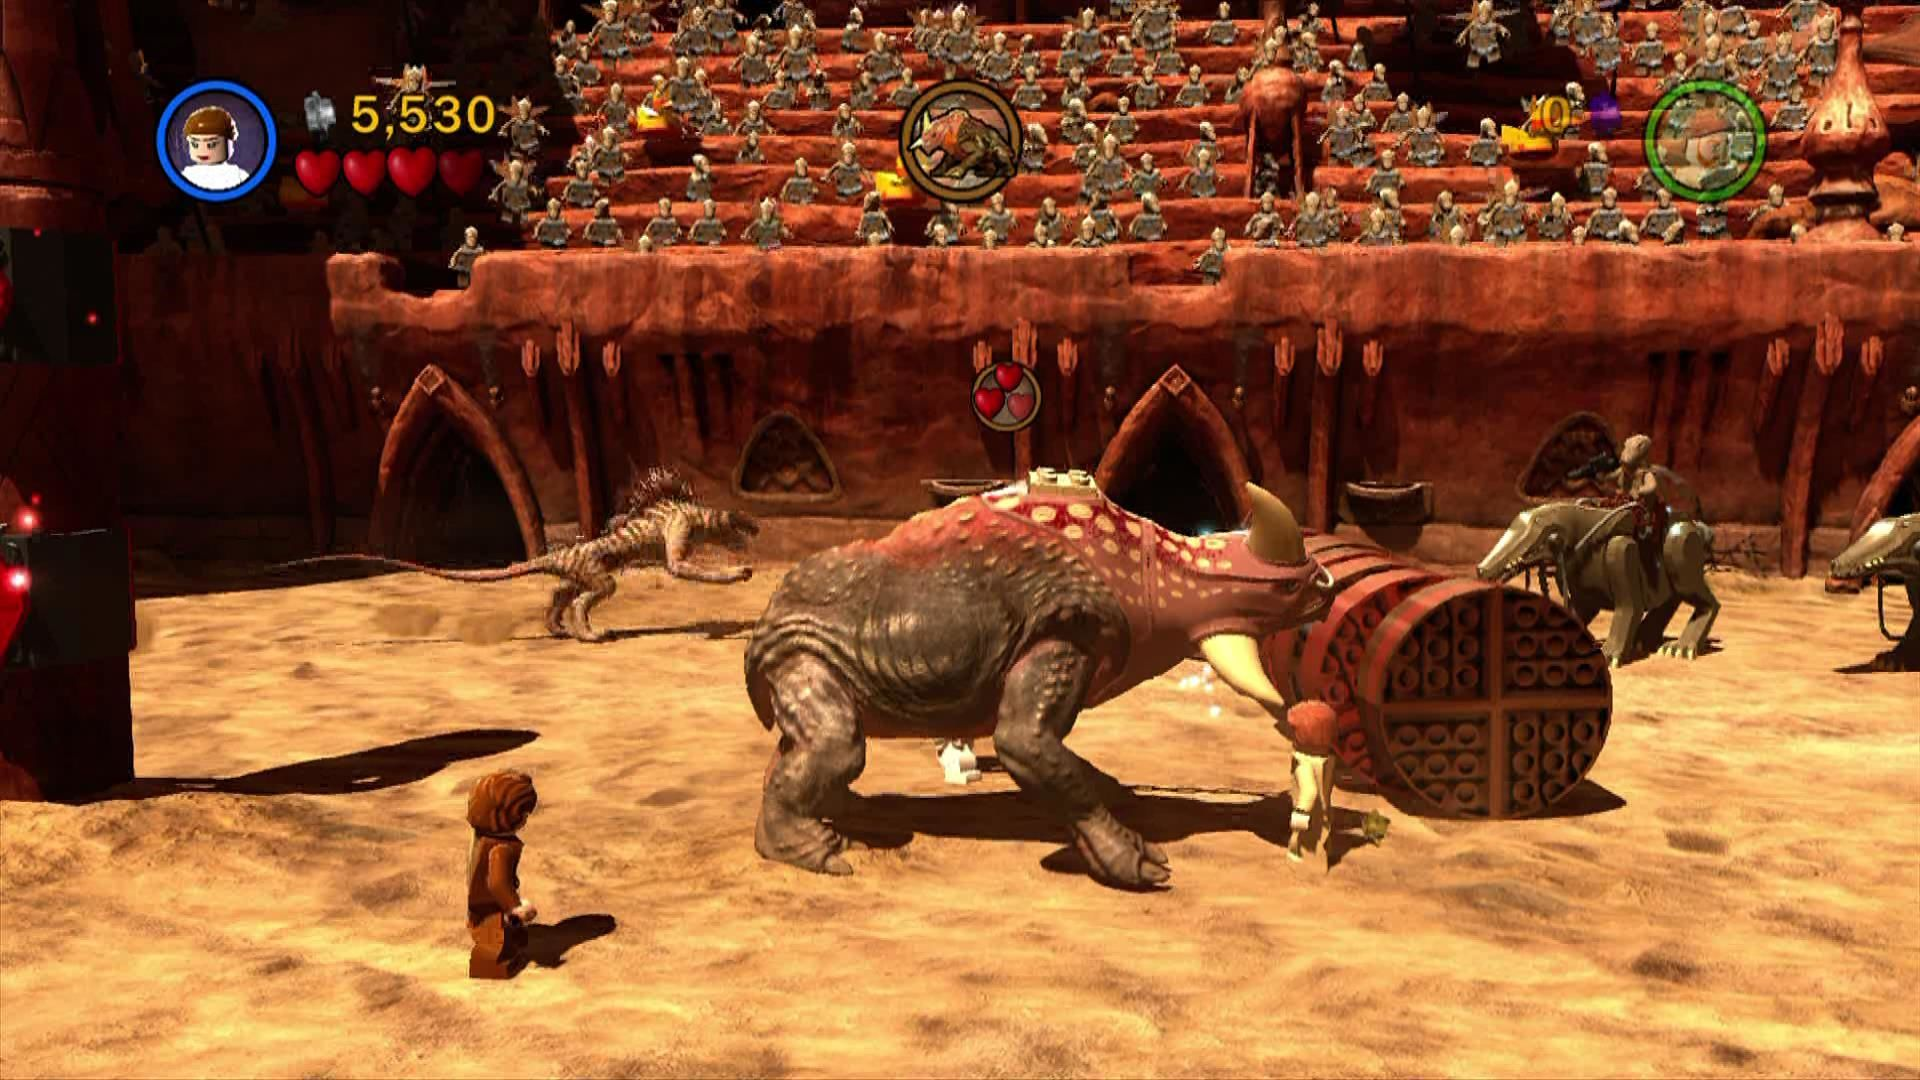 Lego Star Wars Iii The Clone Wars Screenshots For Xbox 360 Mobygames